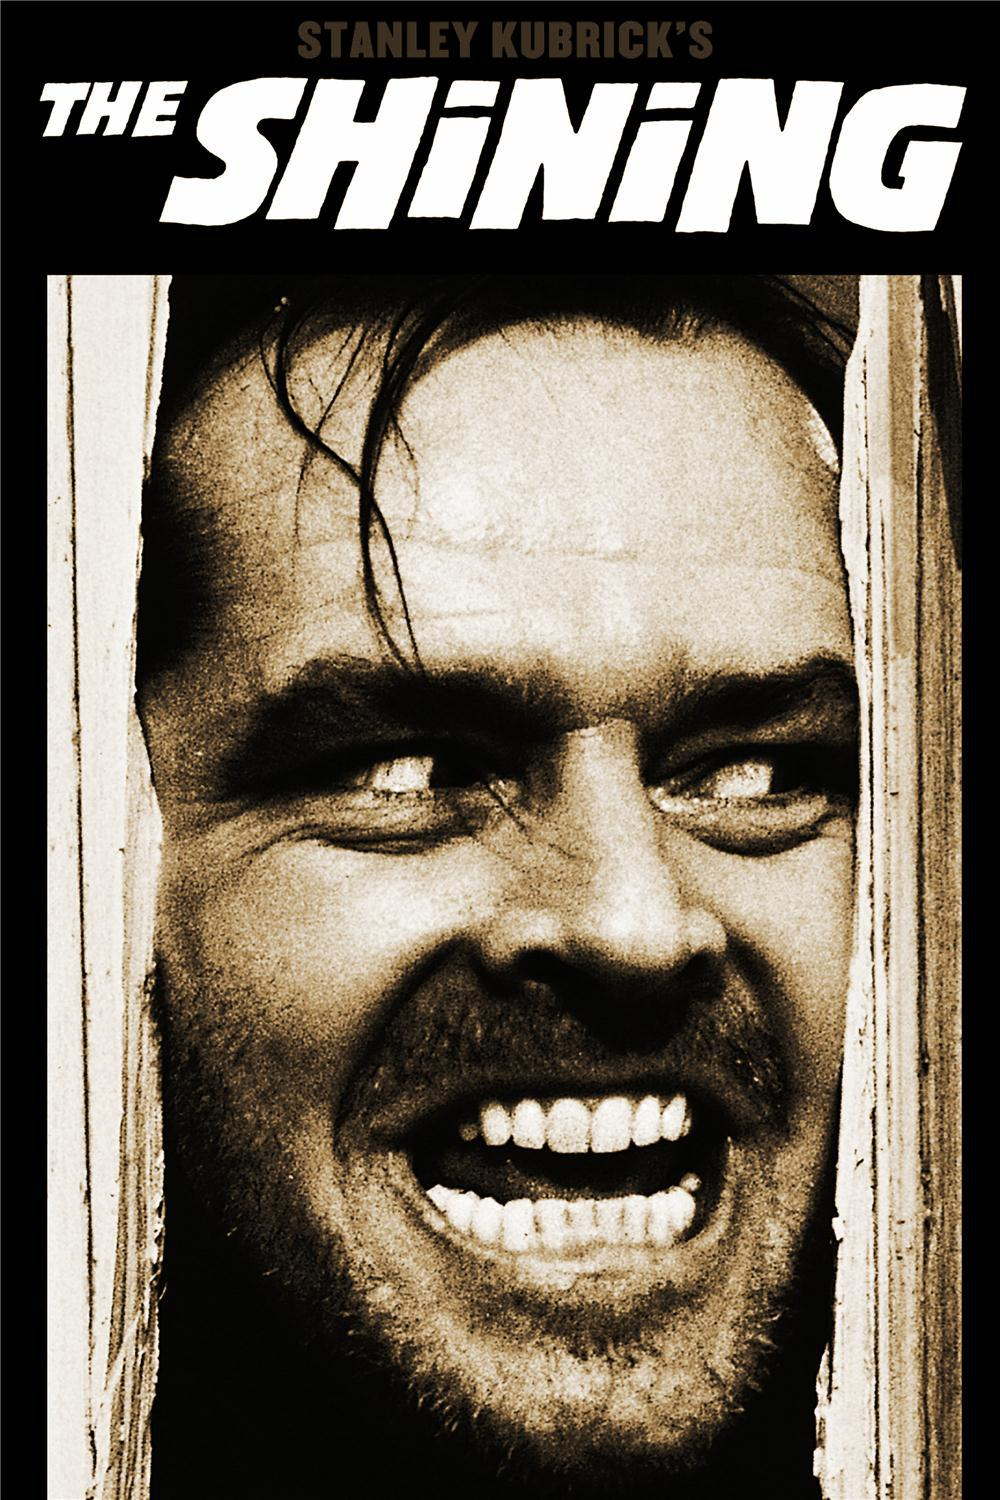 The-Shining-Home-Decoration-Classic-Fashion-Movie-Style-Custom-FREE-SHIPPING-Poster-Print-Size-40x60-cm.jpg